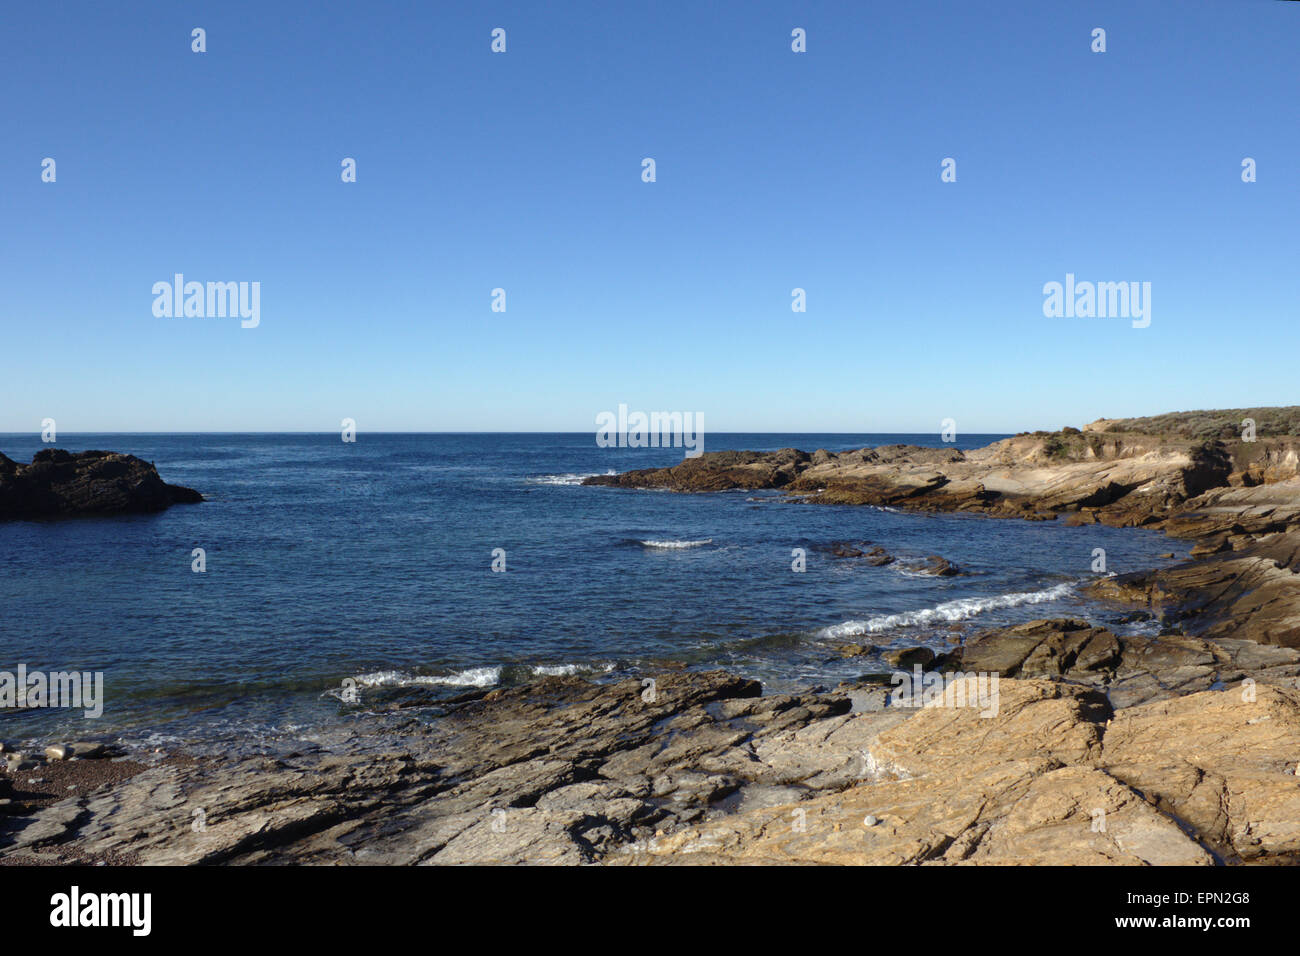 A view of Point Lobos State Reserve. Stock Photo